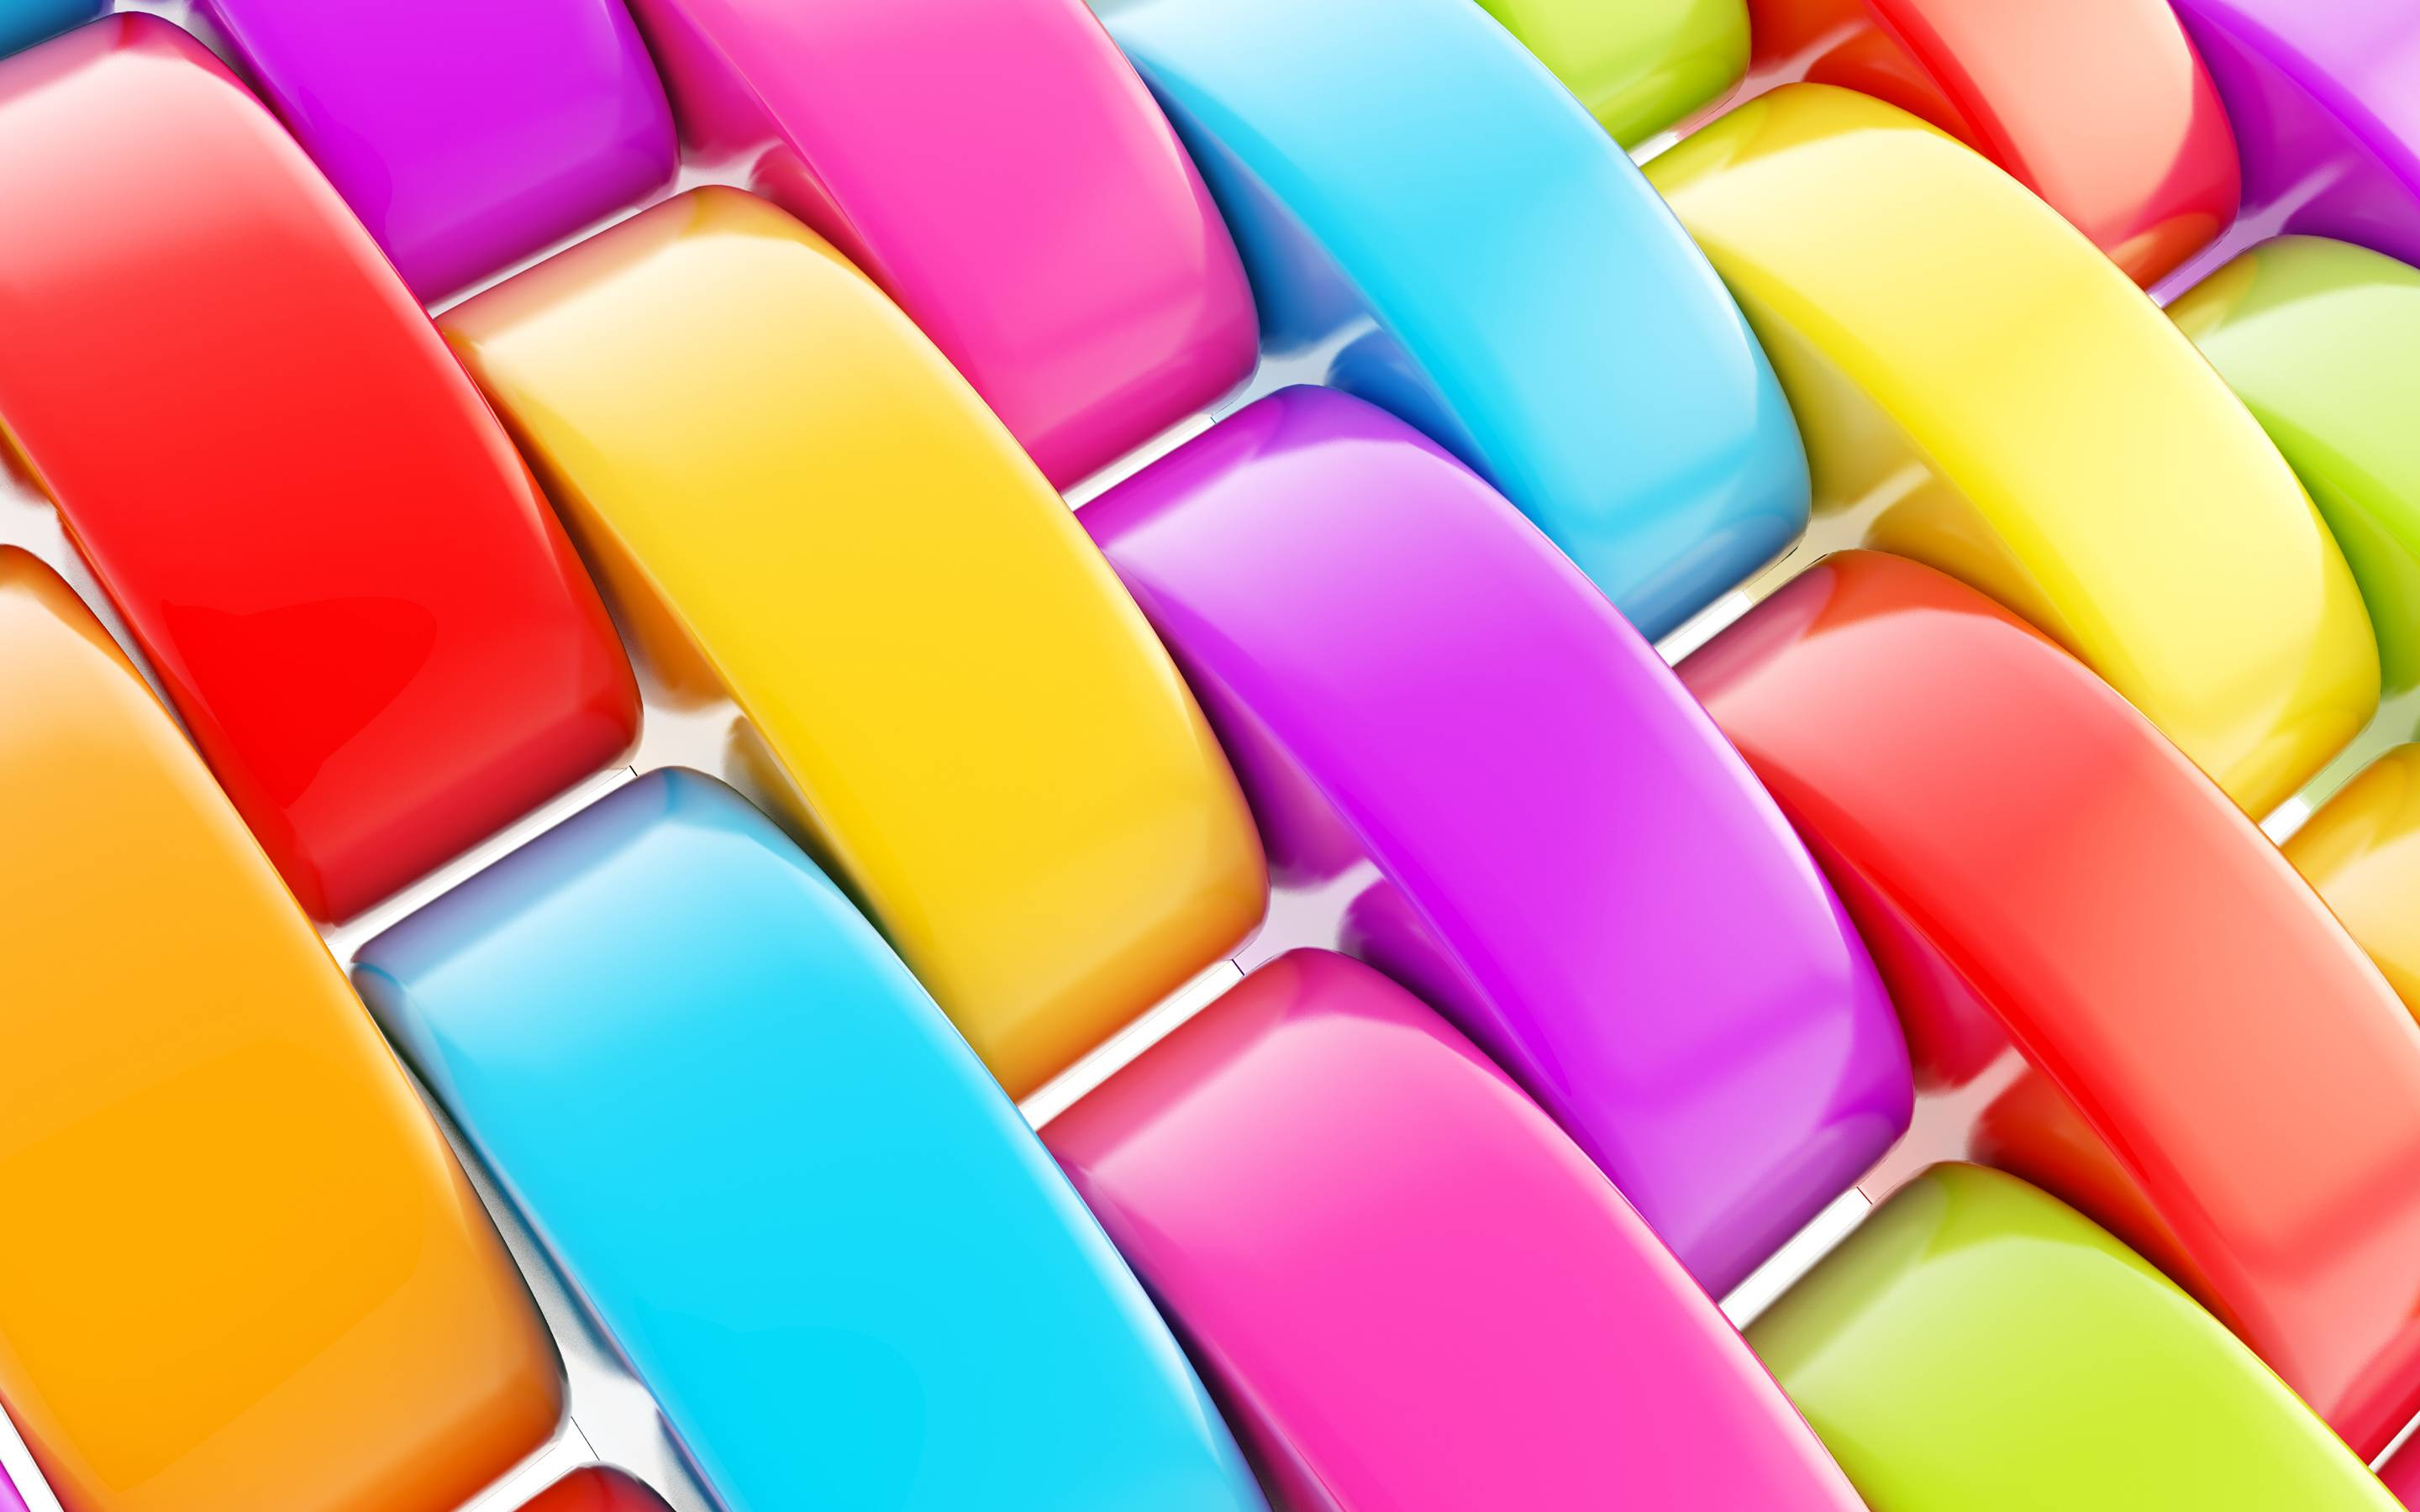 Colourful Wallpapers